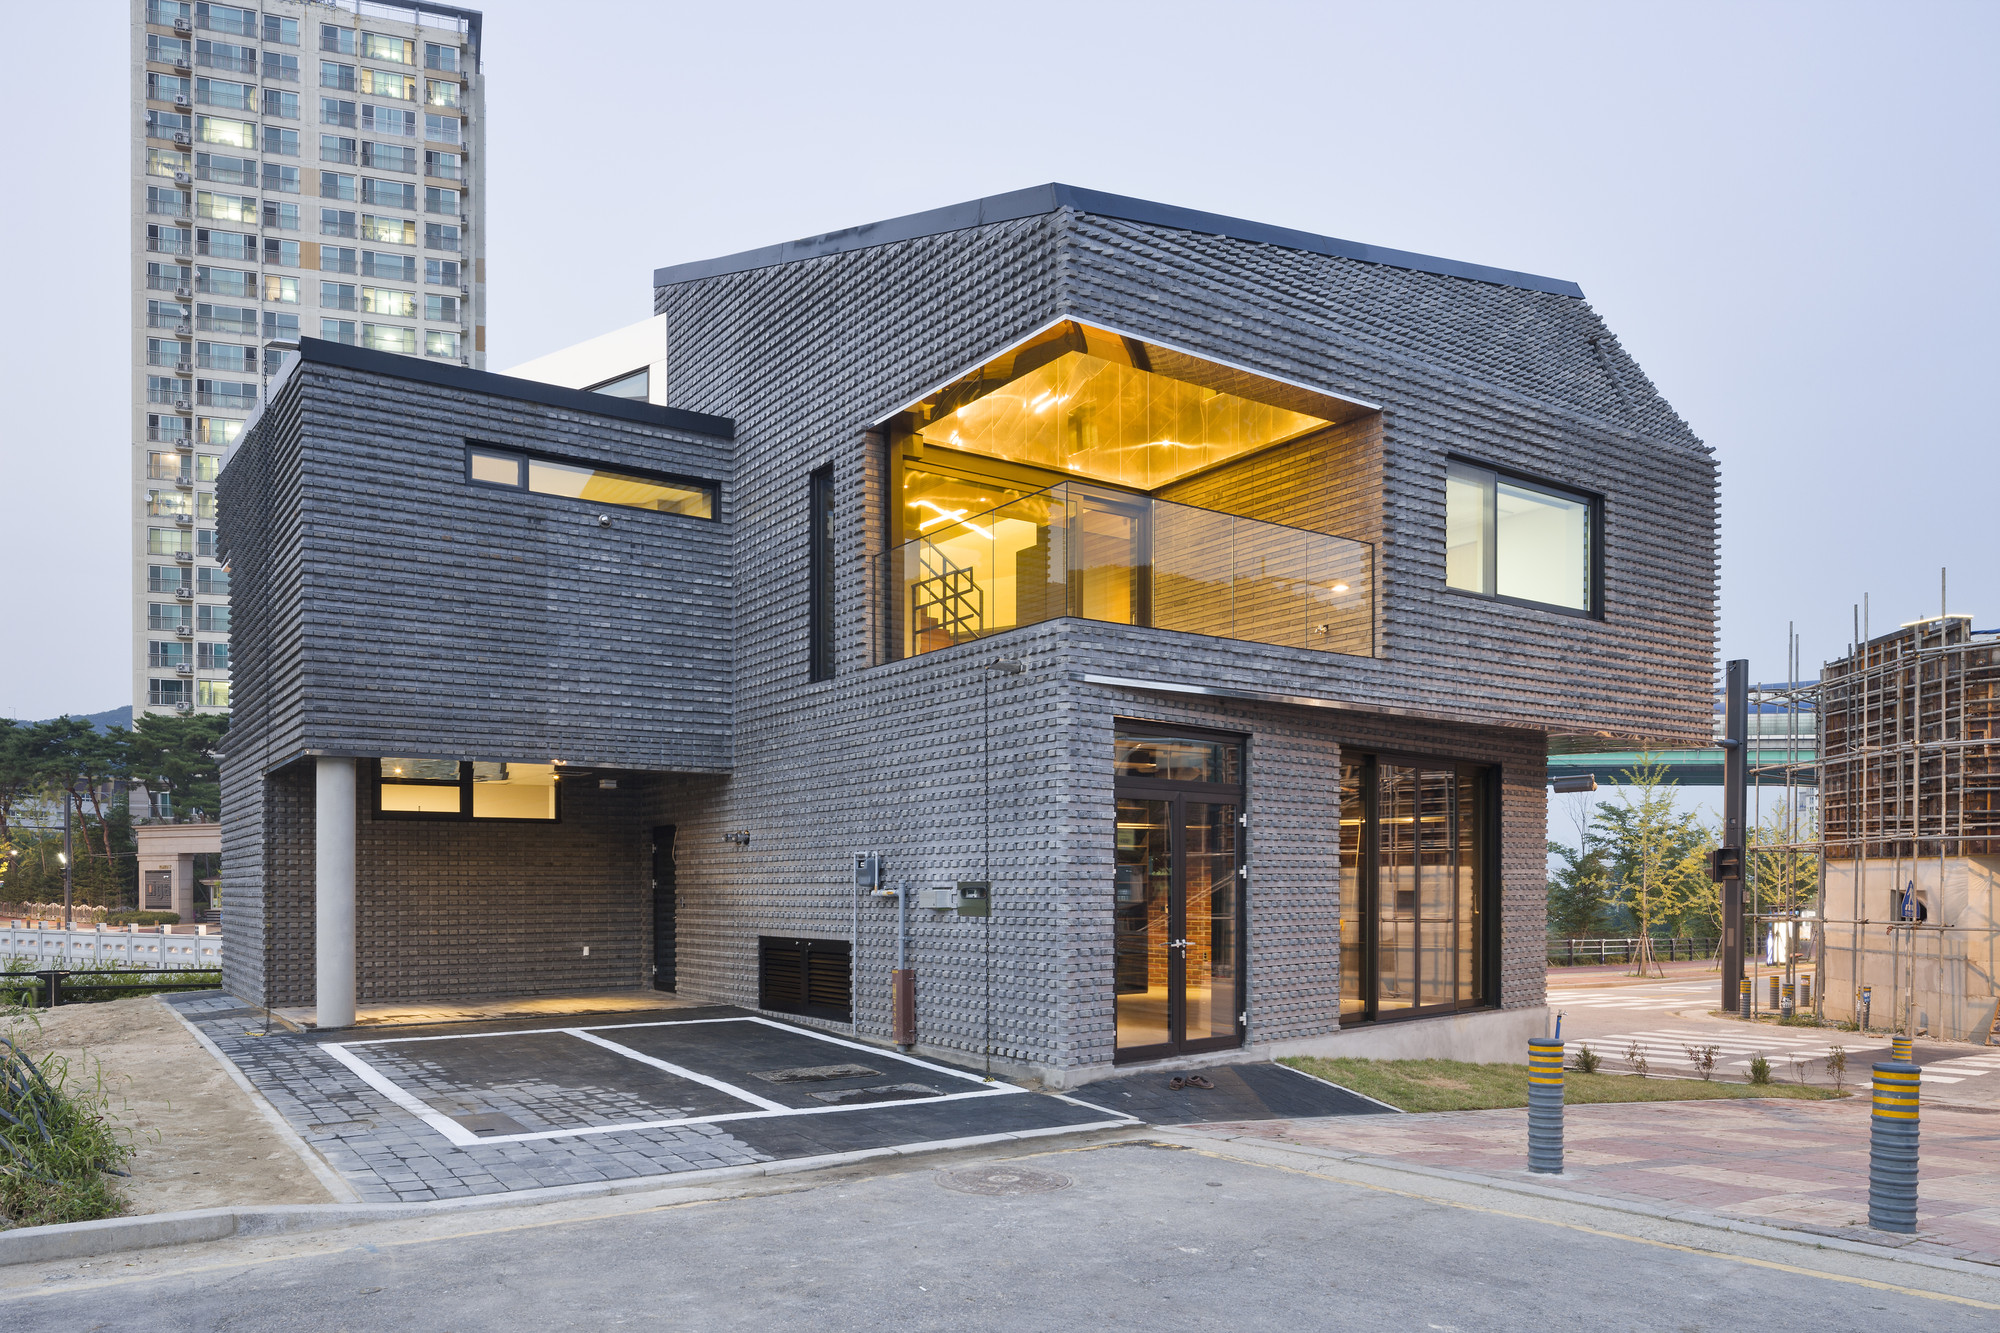 JOHO Architecture Office ArchDaily - Curving house joho architecture